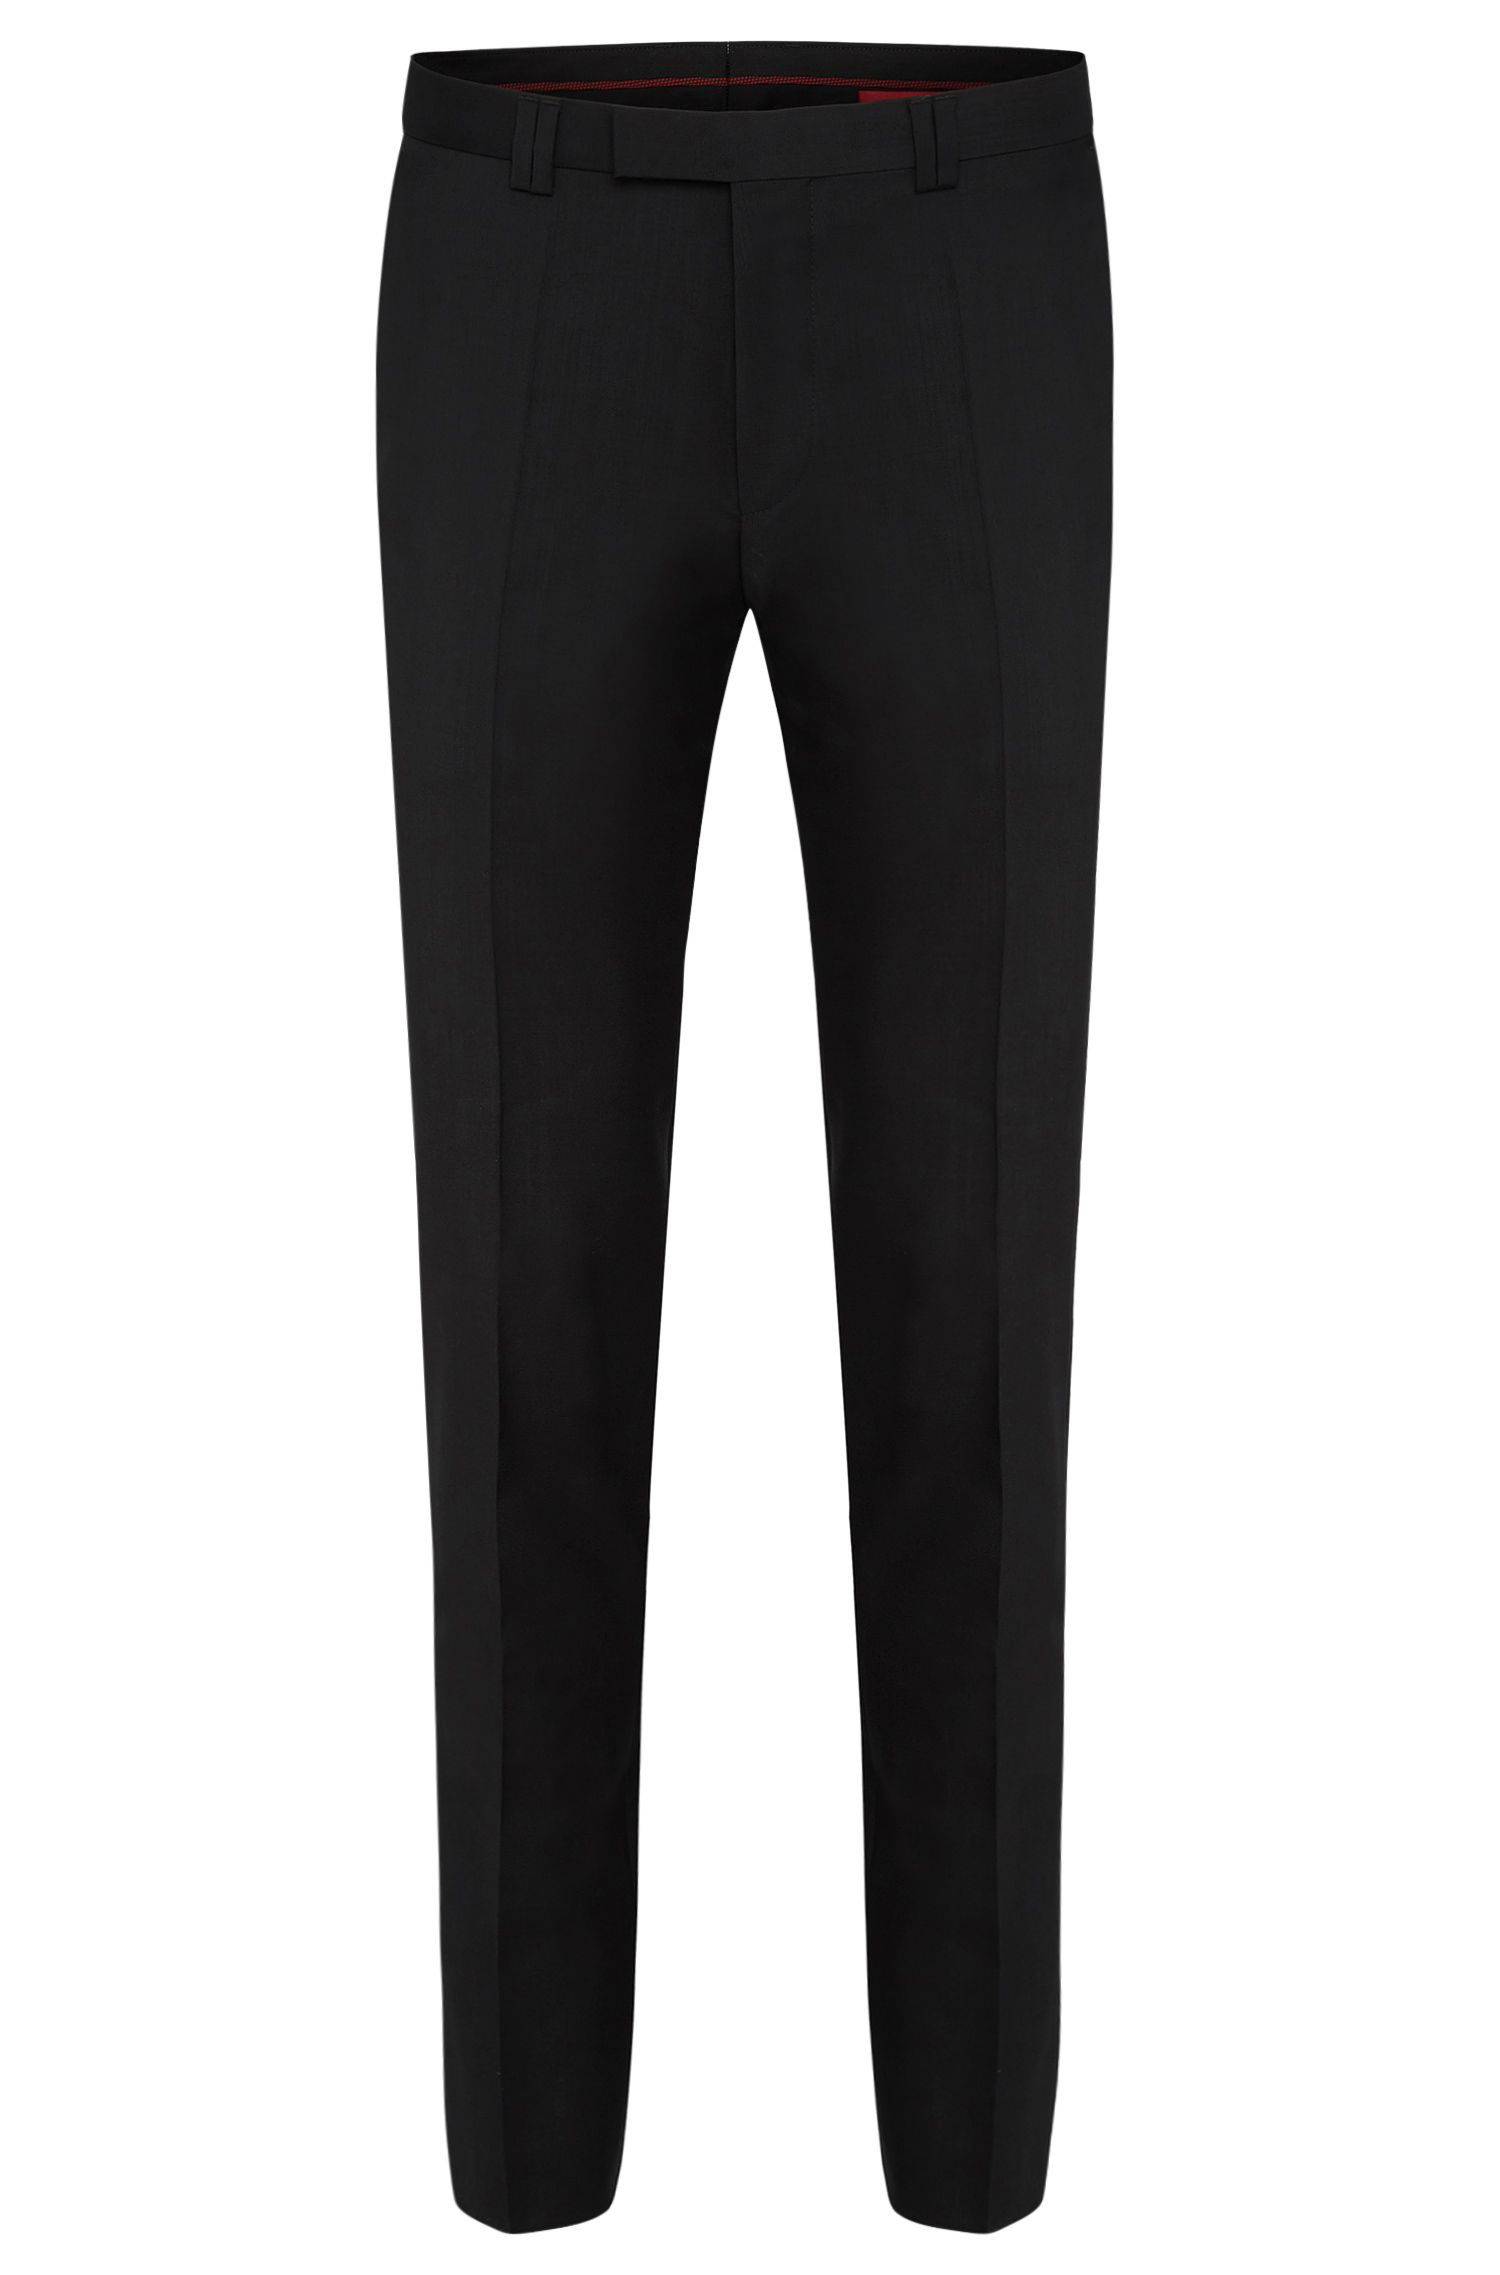 Pantalon uni Extra Slim Fit en pure laine vierge : « HopeS »